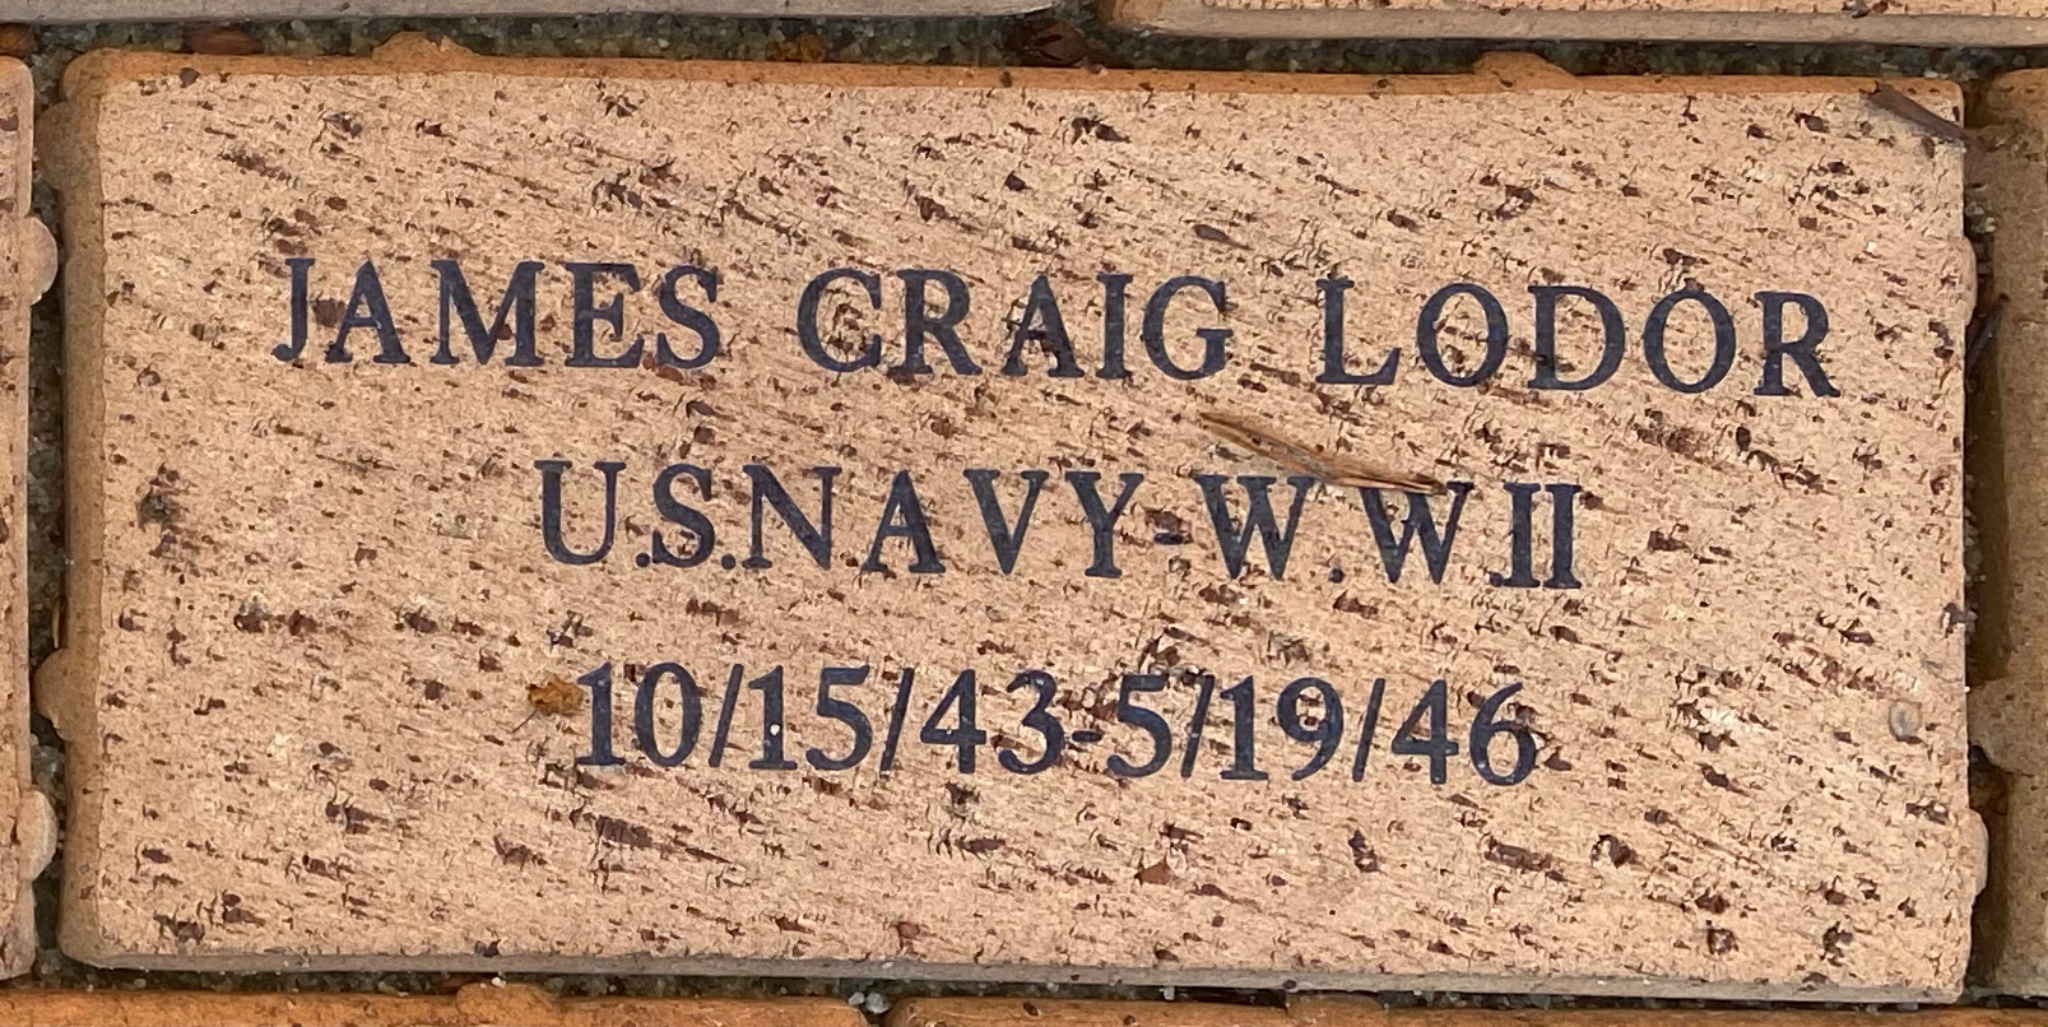 JAMES CRAIG LODOR U.S.NAVY- WWII 10/15/43-5/19/46